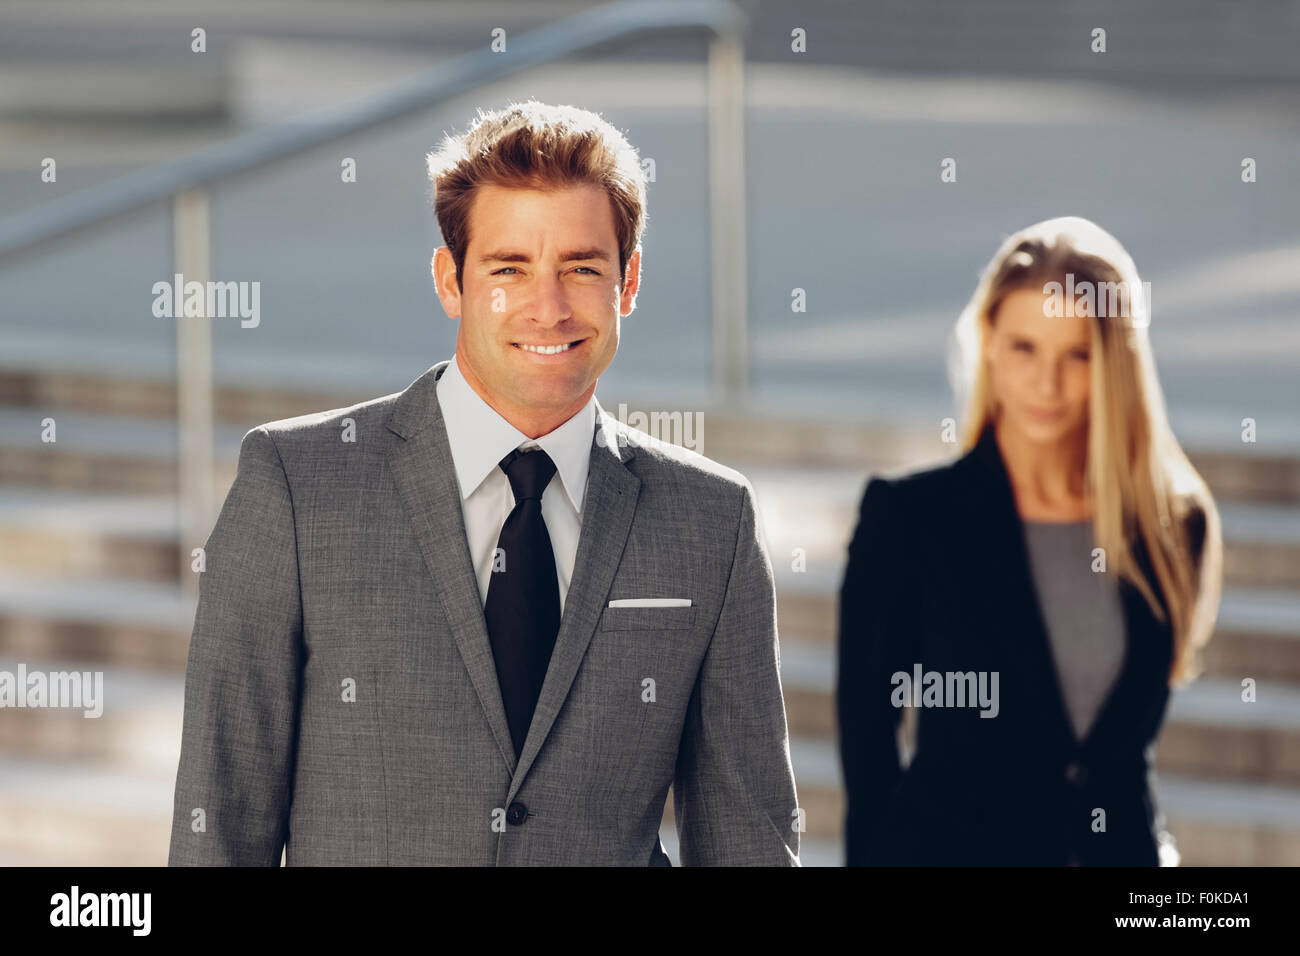 Smiling businessman with businesswoman in background - Stock Image